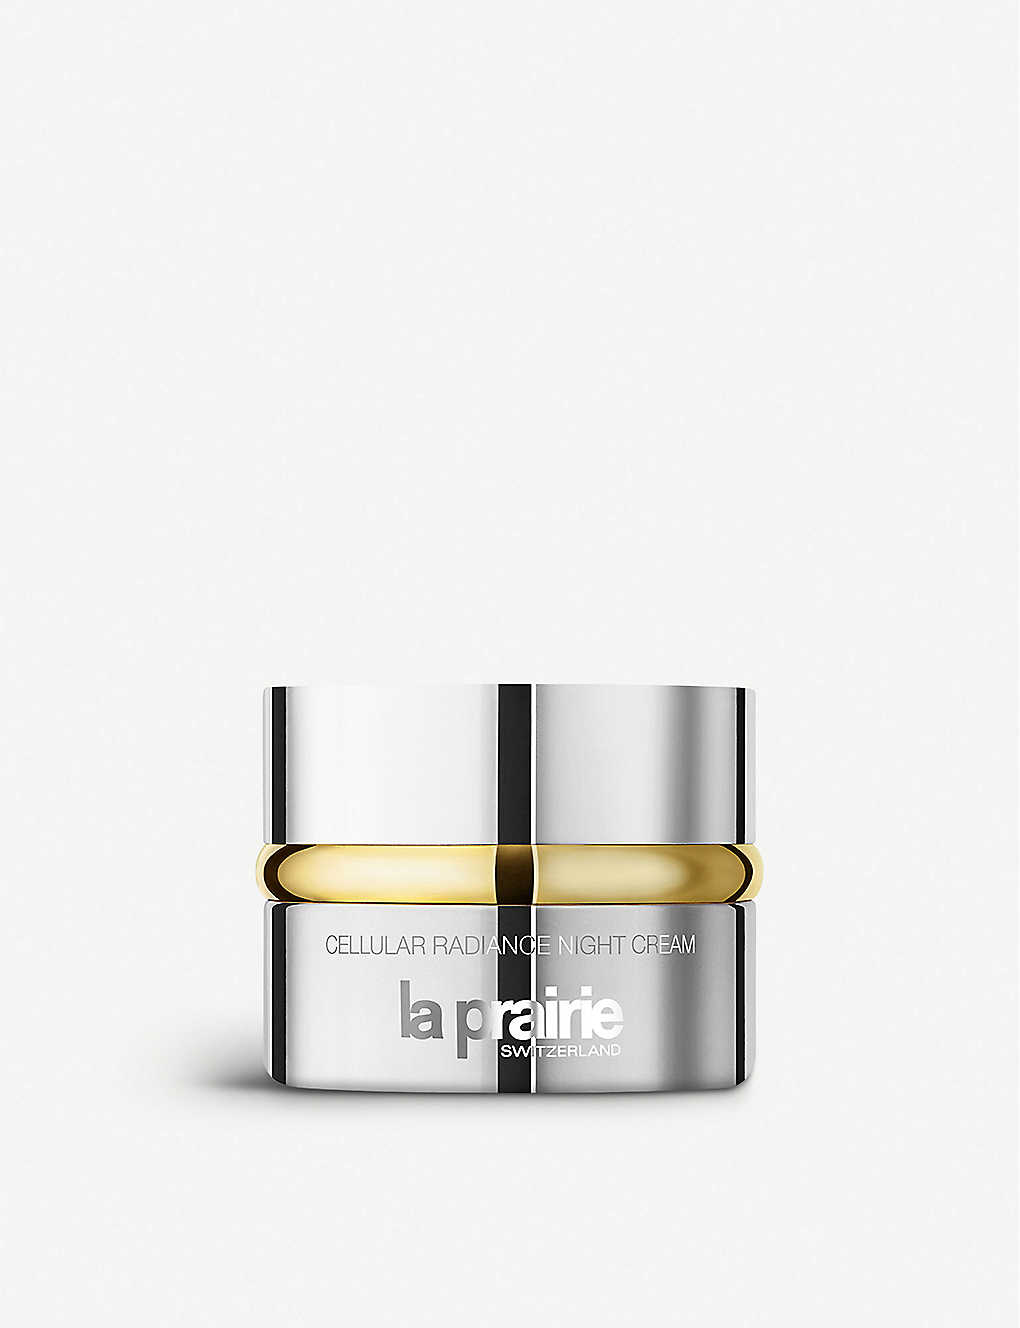 LA PRAIRIE: Cellular Radiance Night Cream 50ml